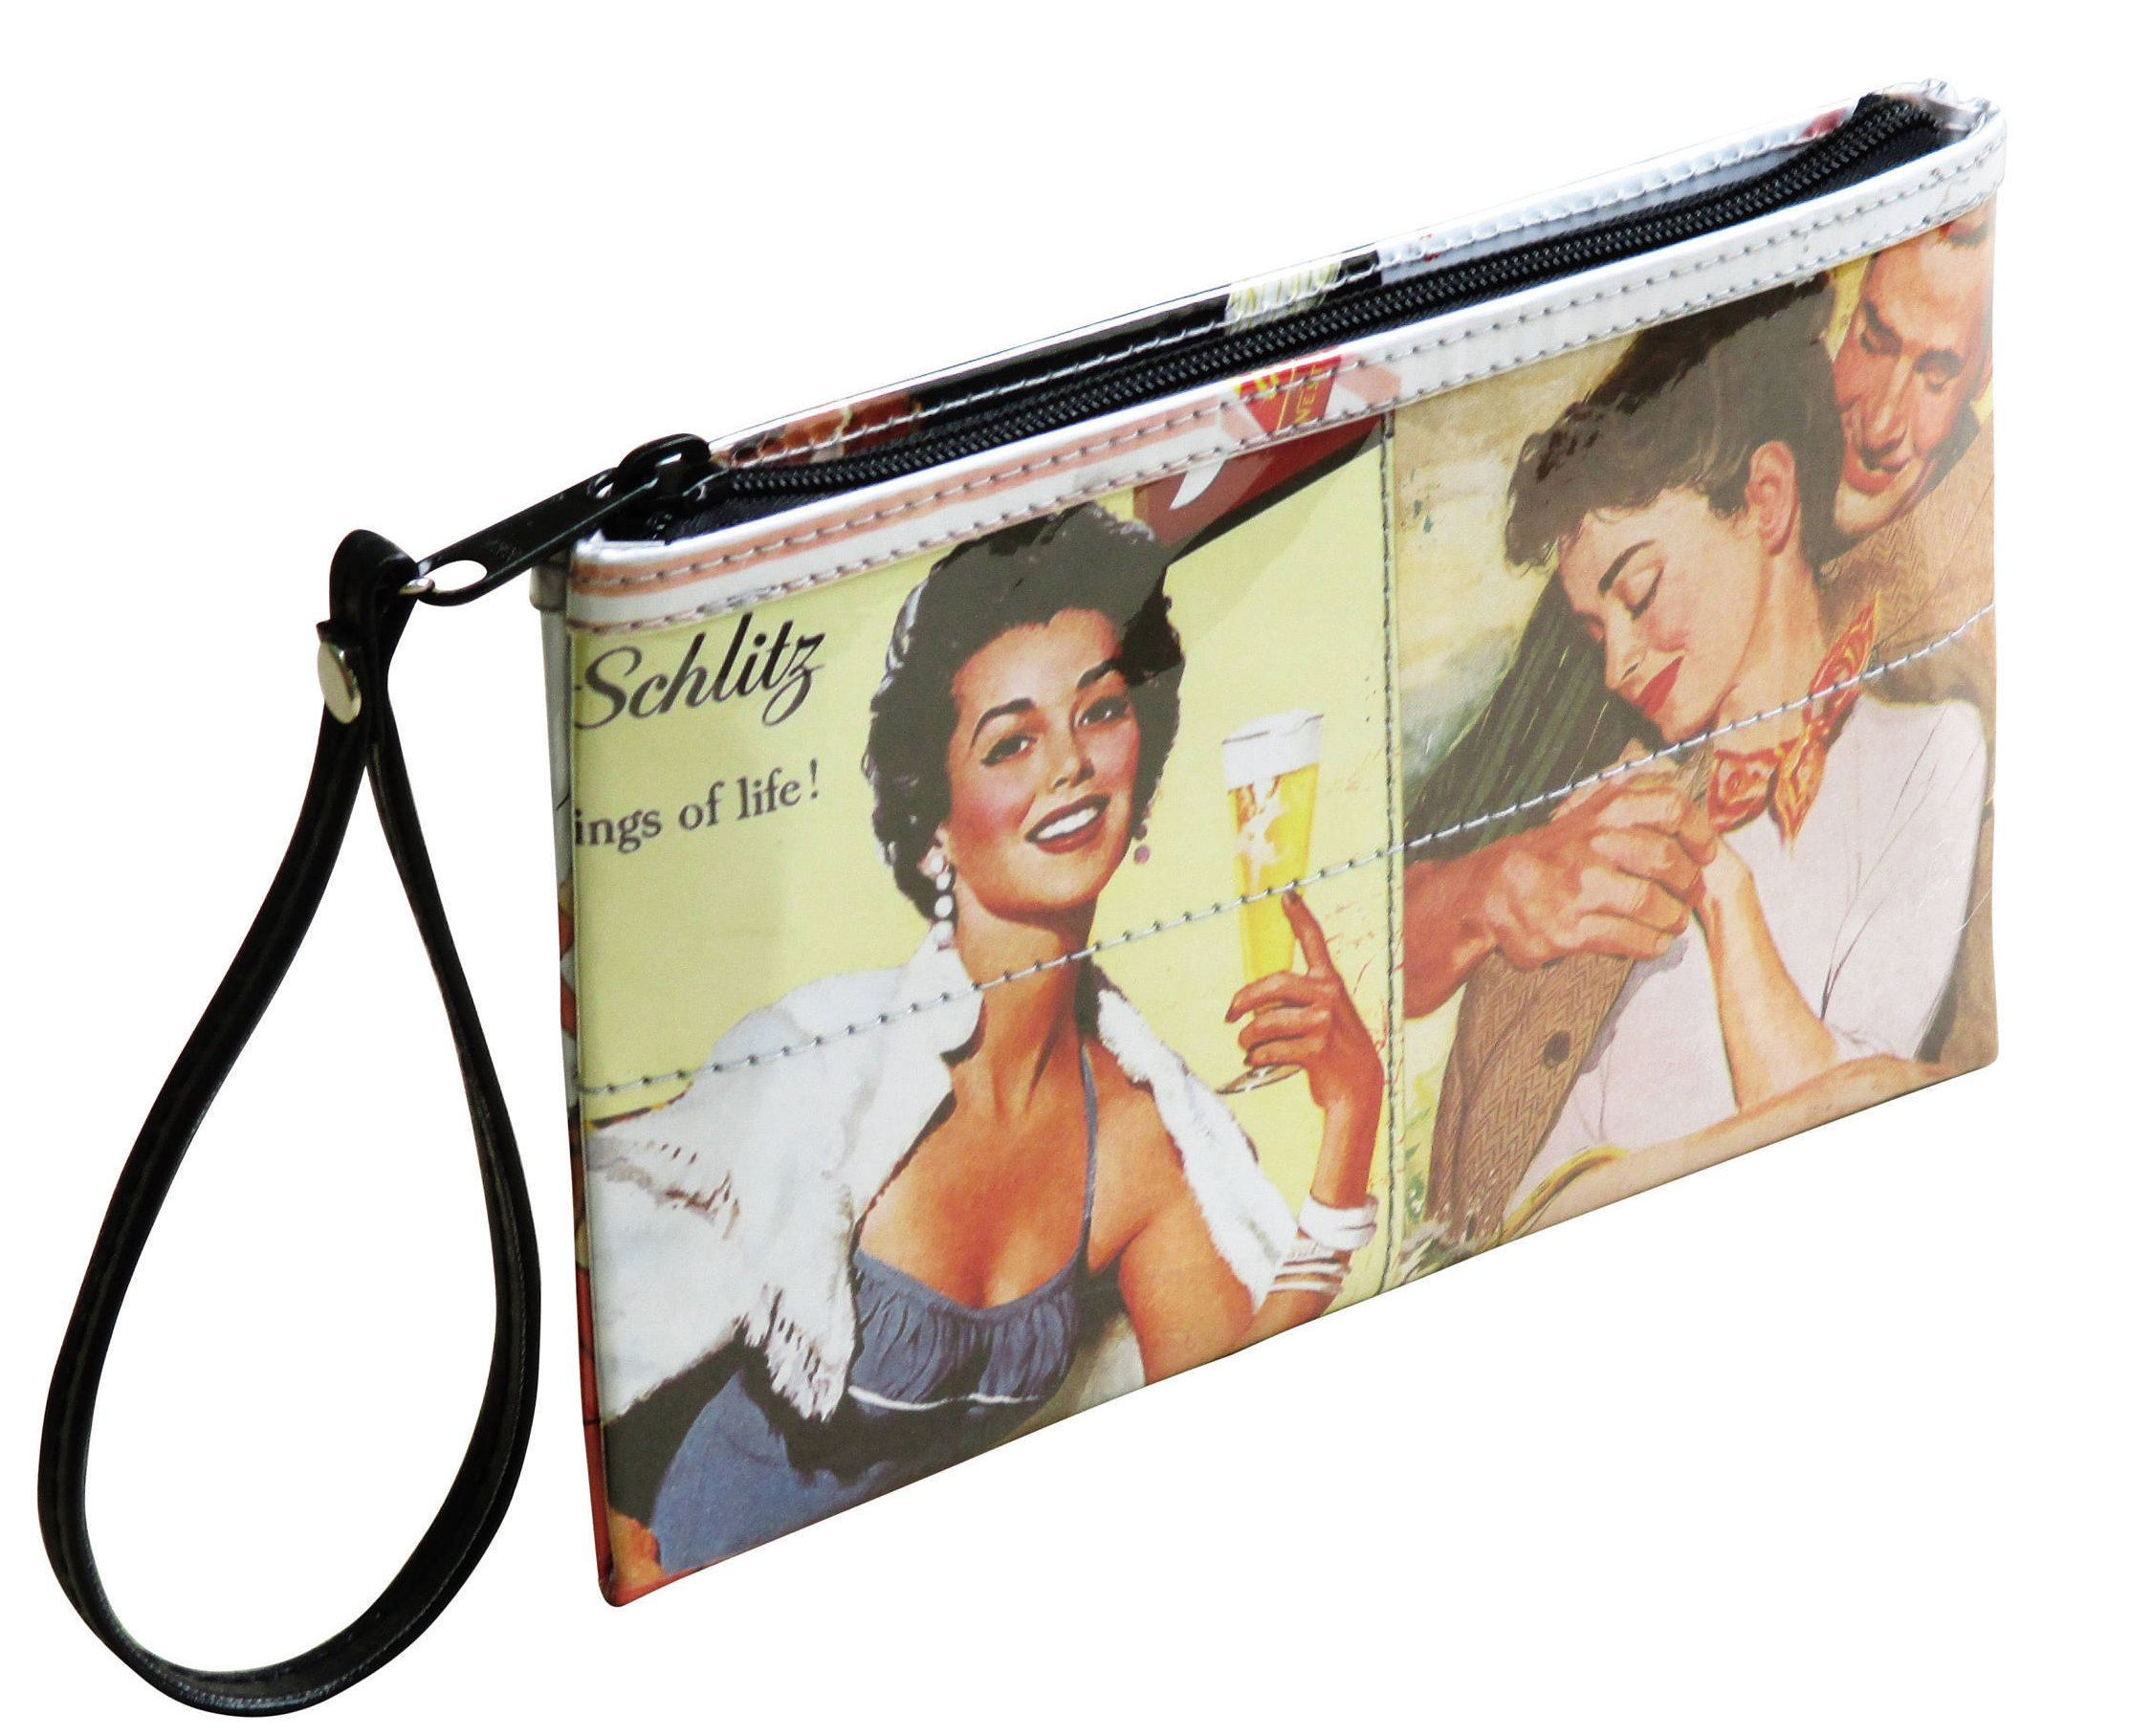 This medium size wristlet is made using images colorful